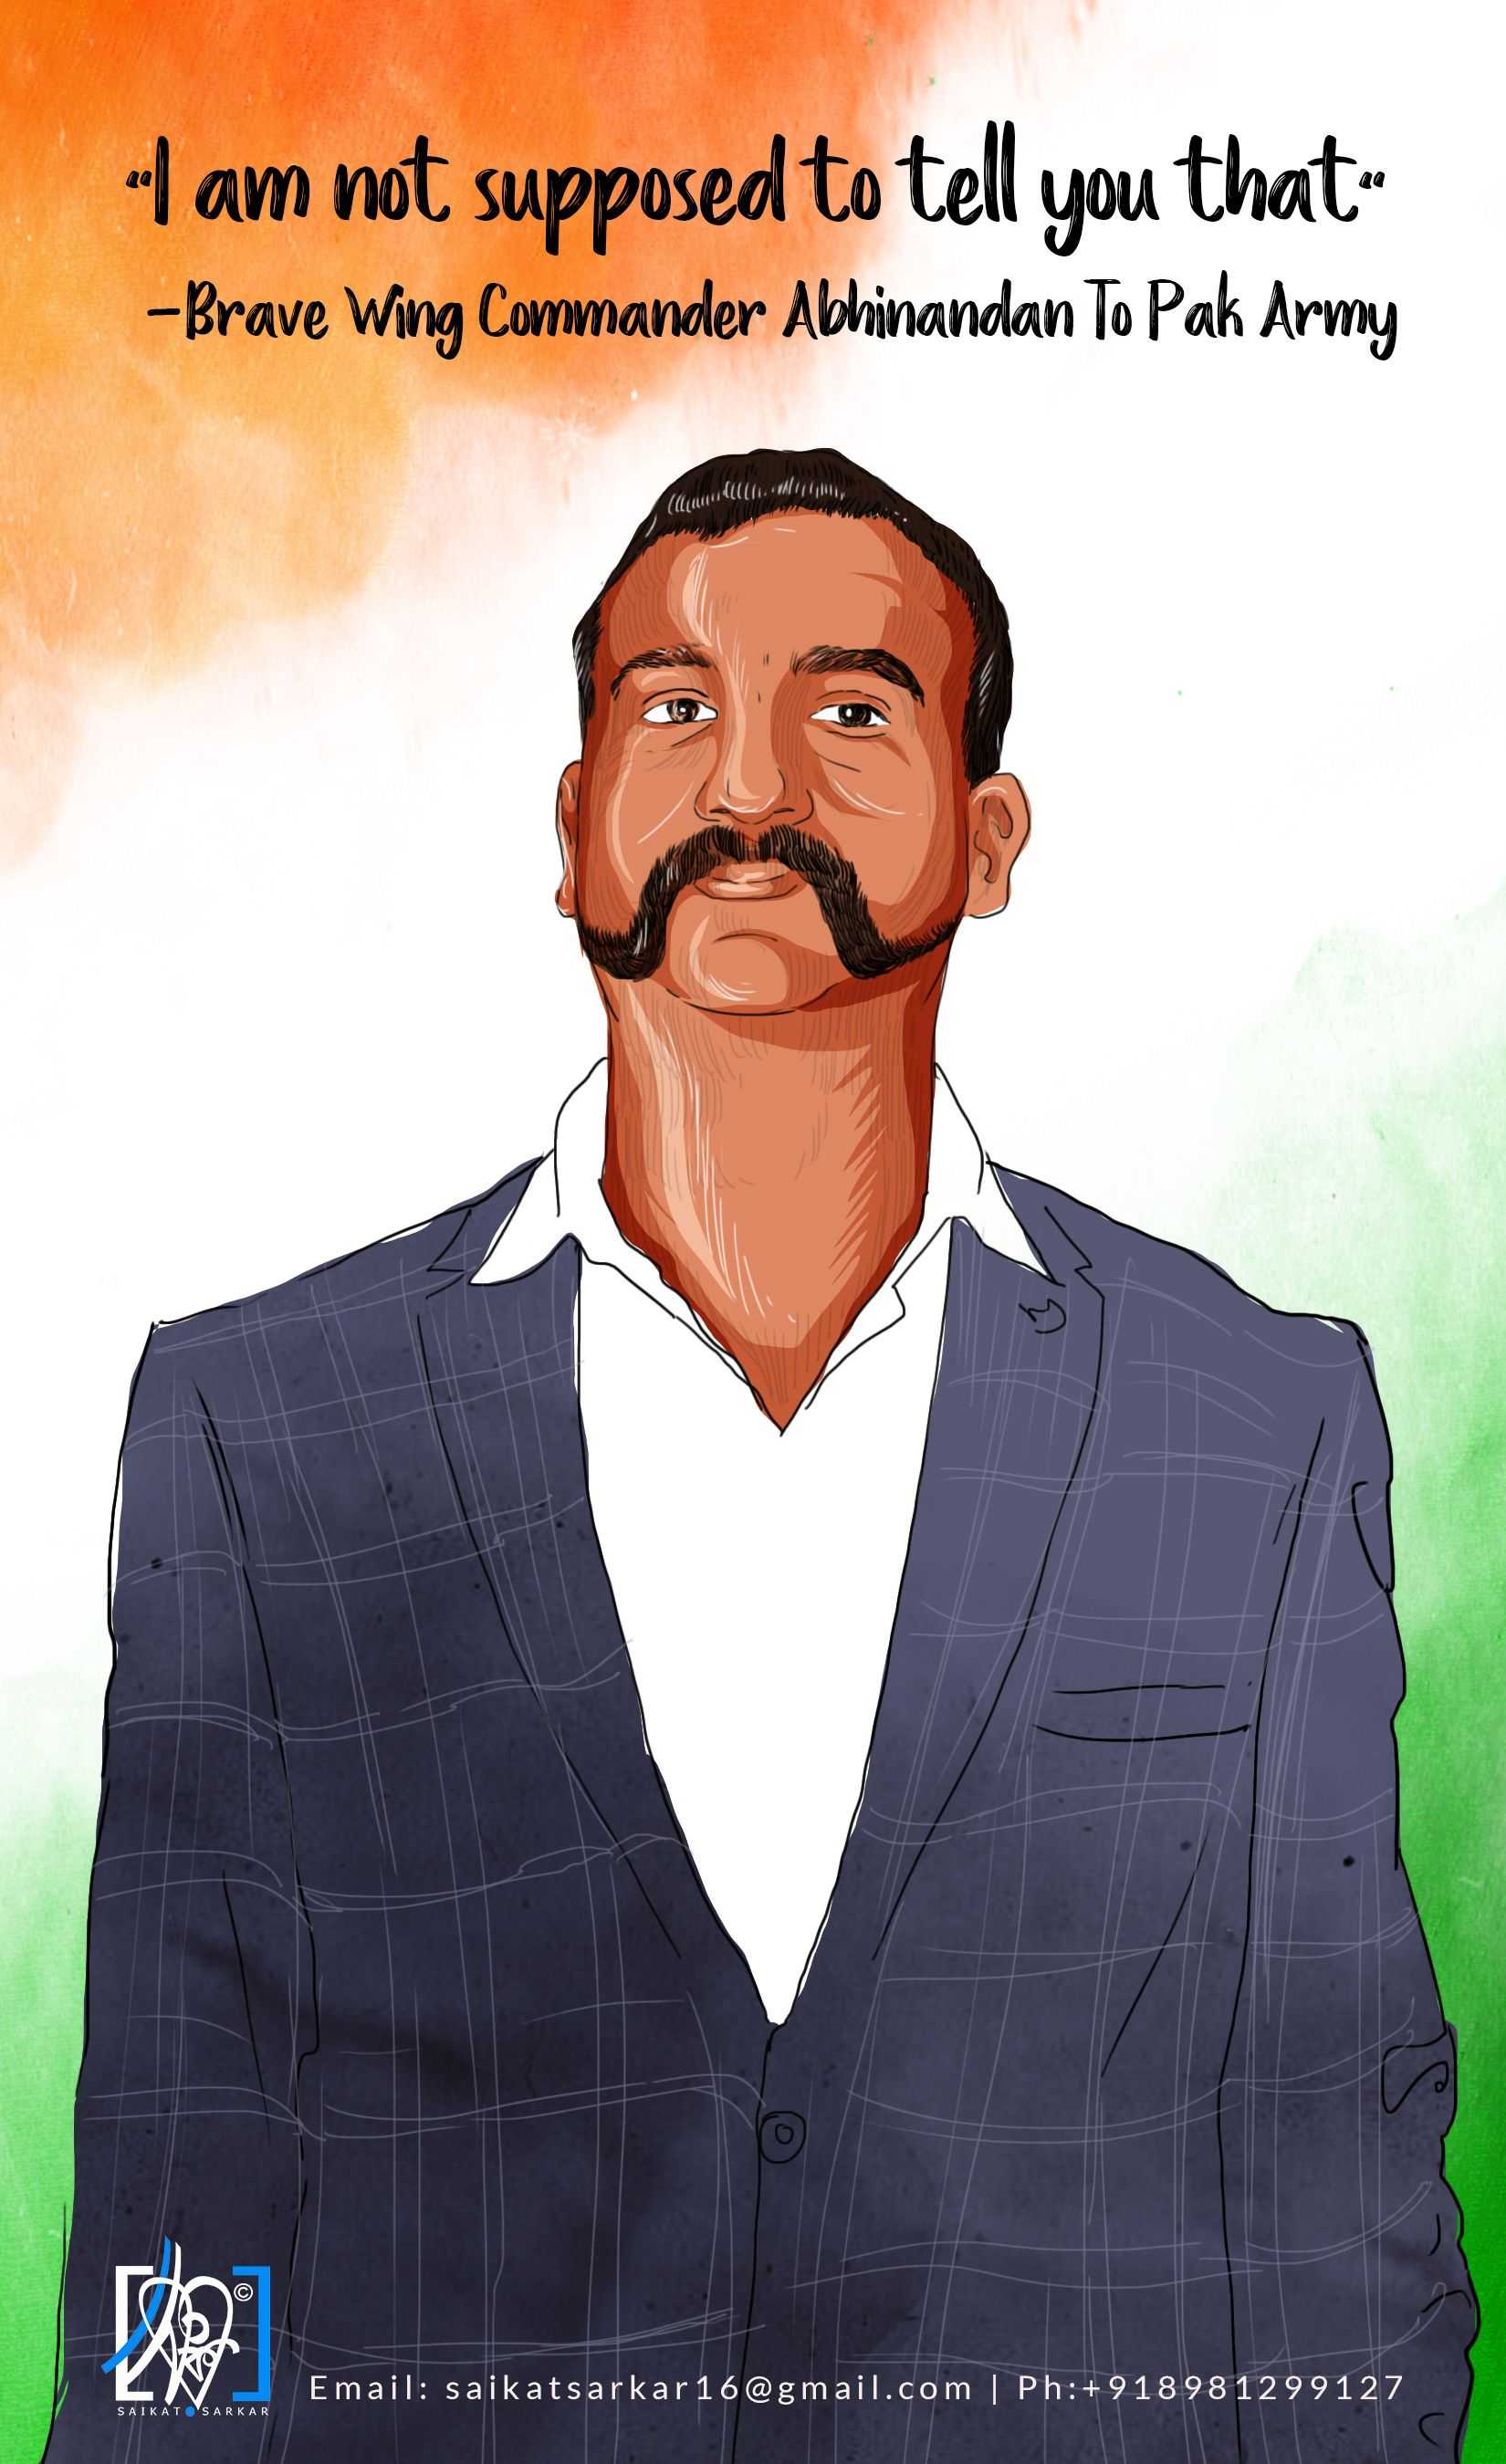 Check out my Behance project Back Abhinandan